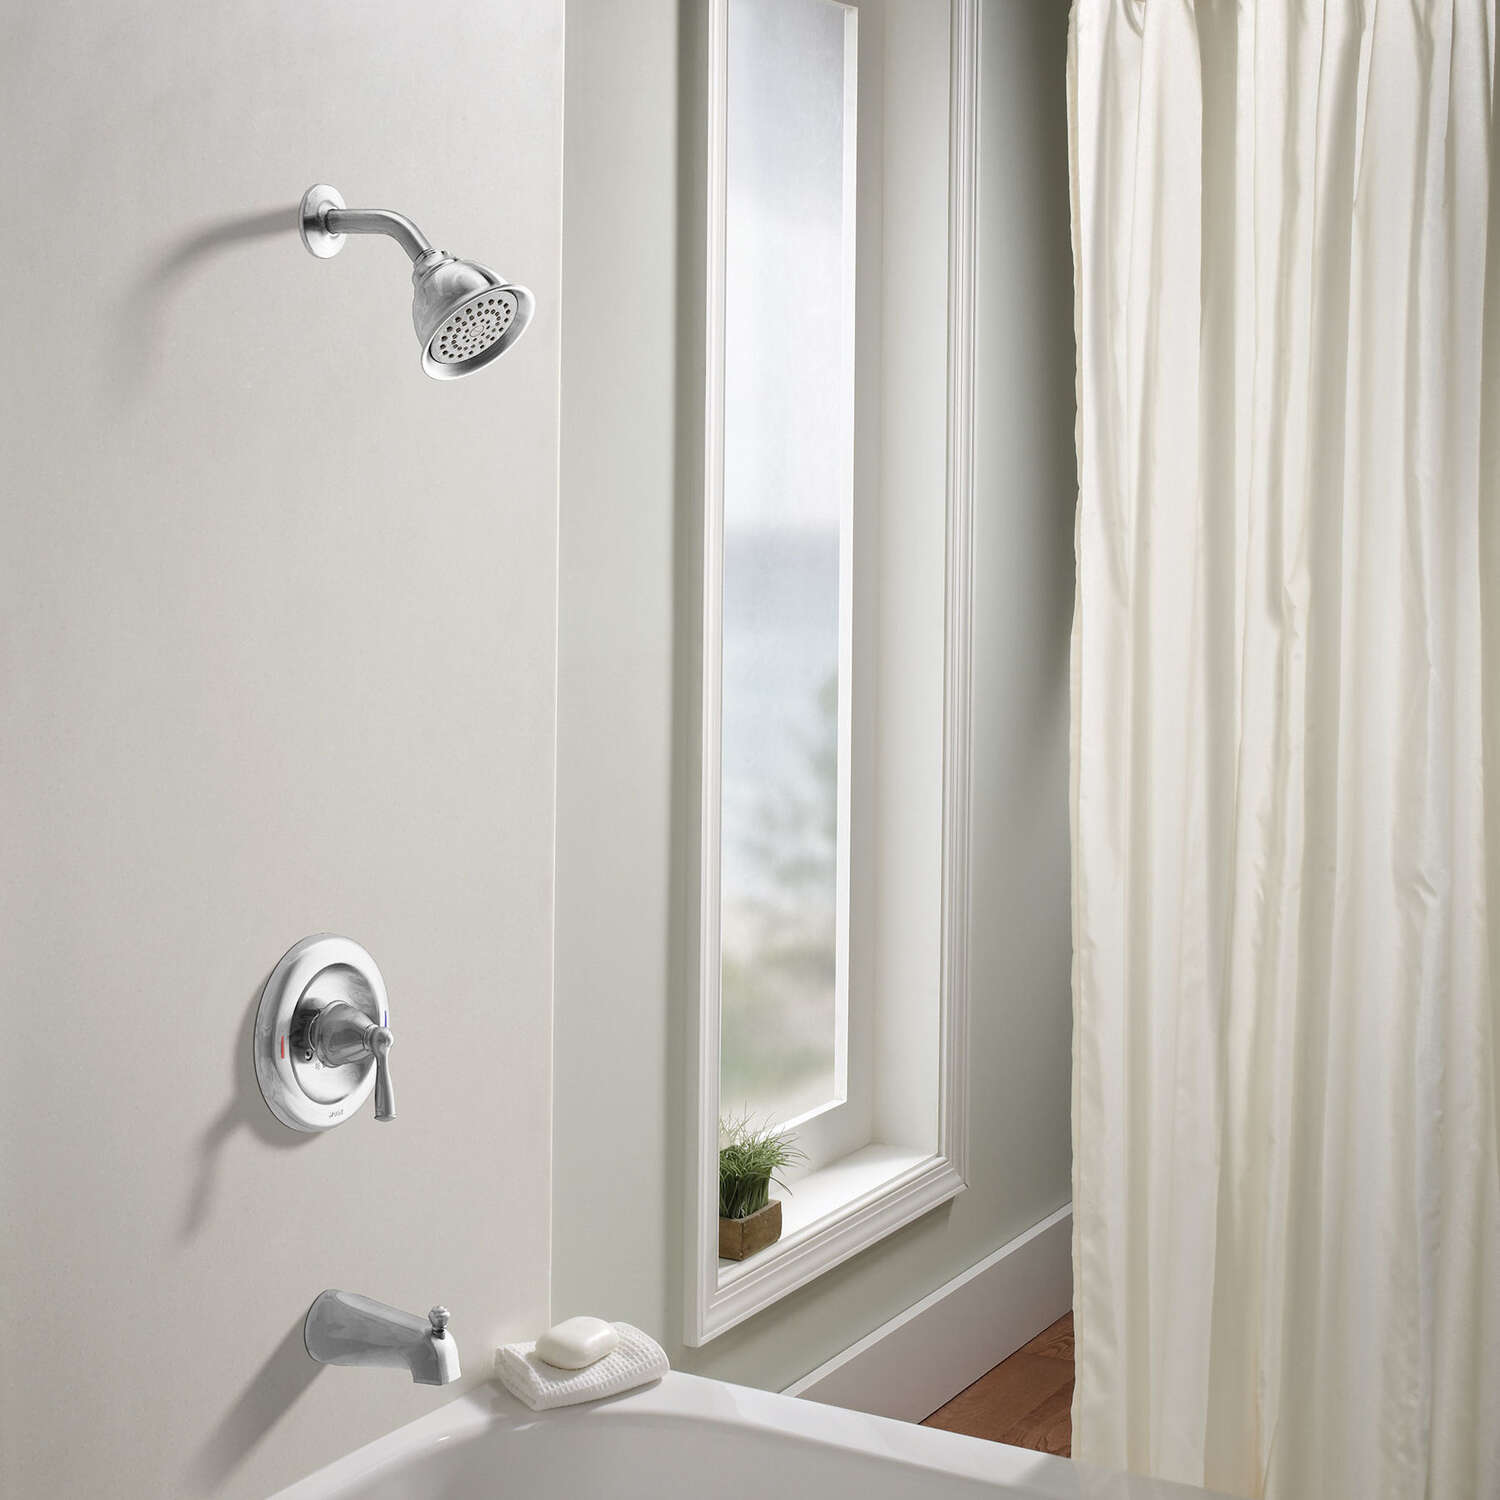 Moen  Tub and Shower Faucet  1 Handle  Banbury  Chrome Finish Metal Material